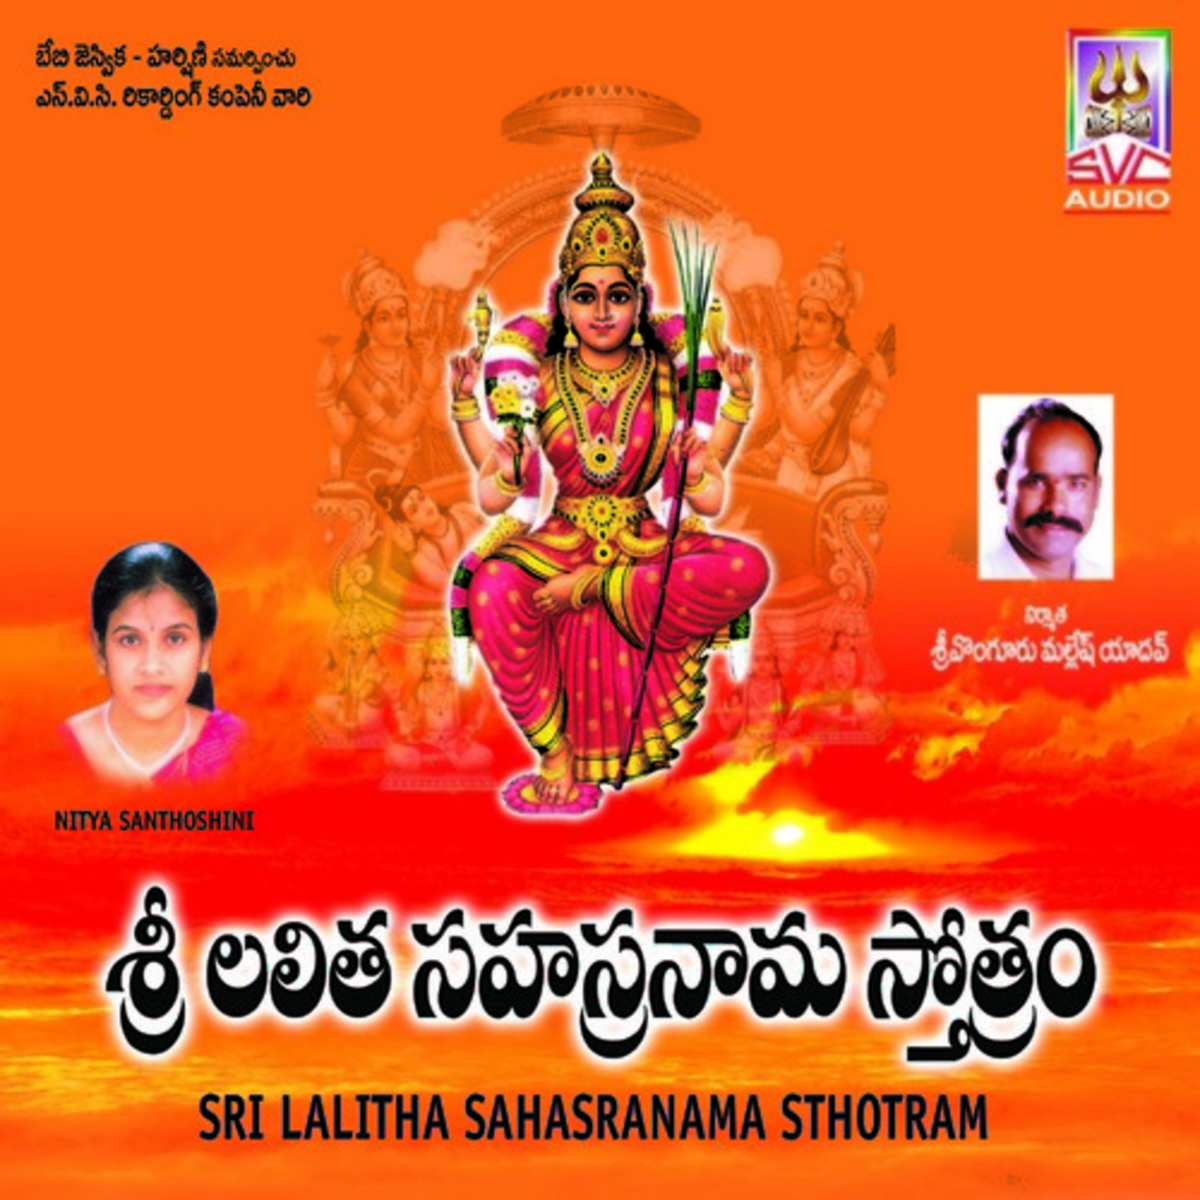 lalitha sahasranamam mp3 songs free download in tamil